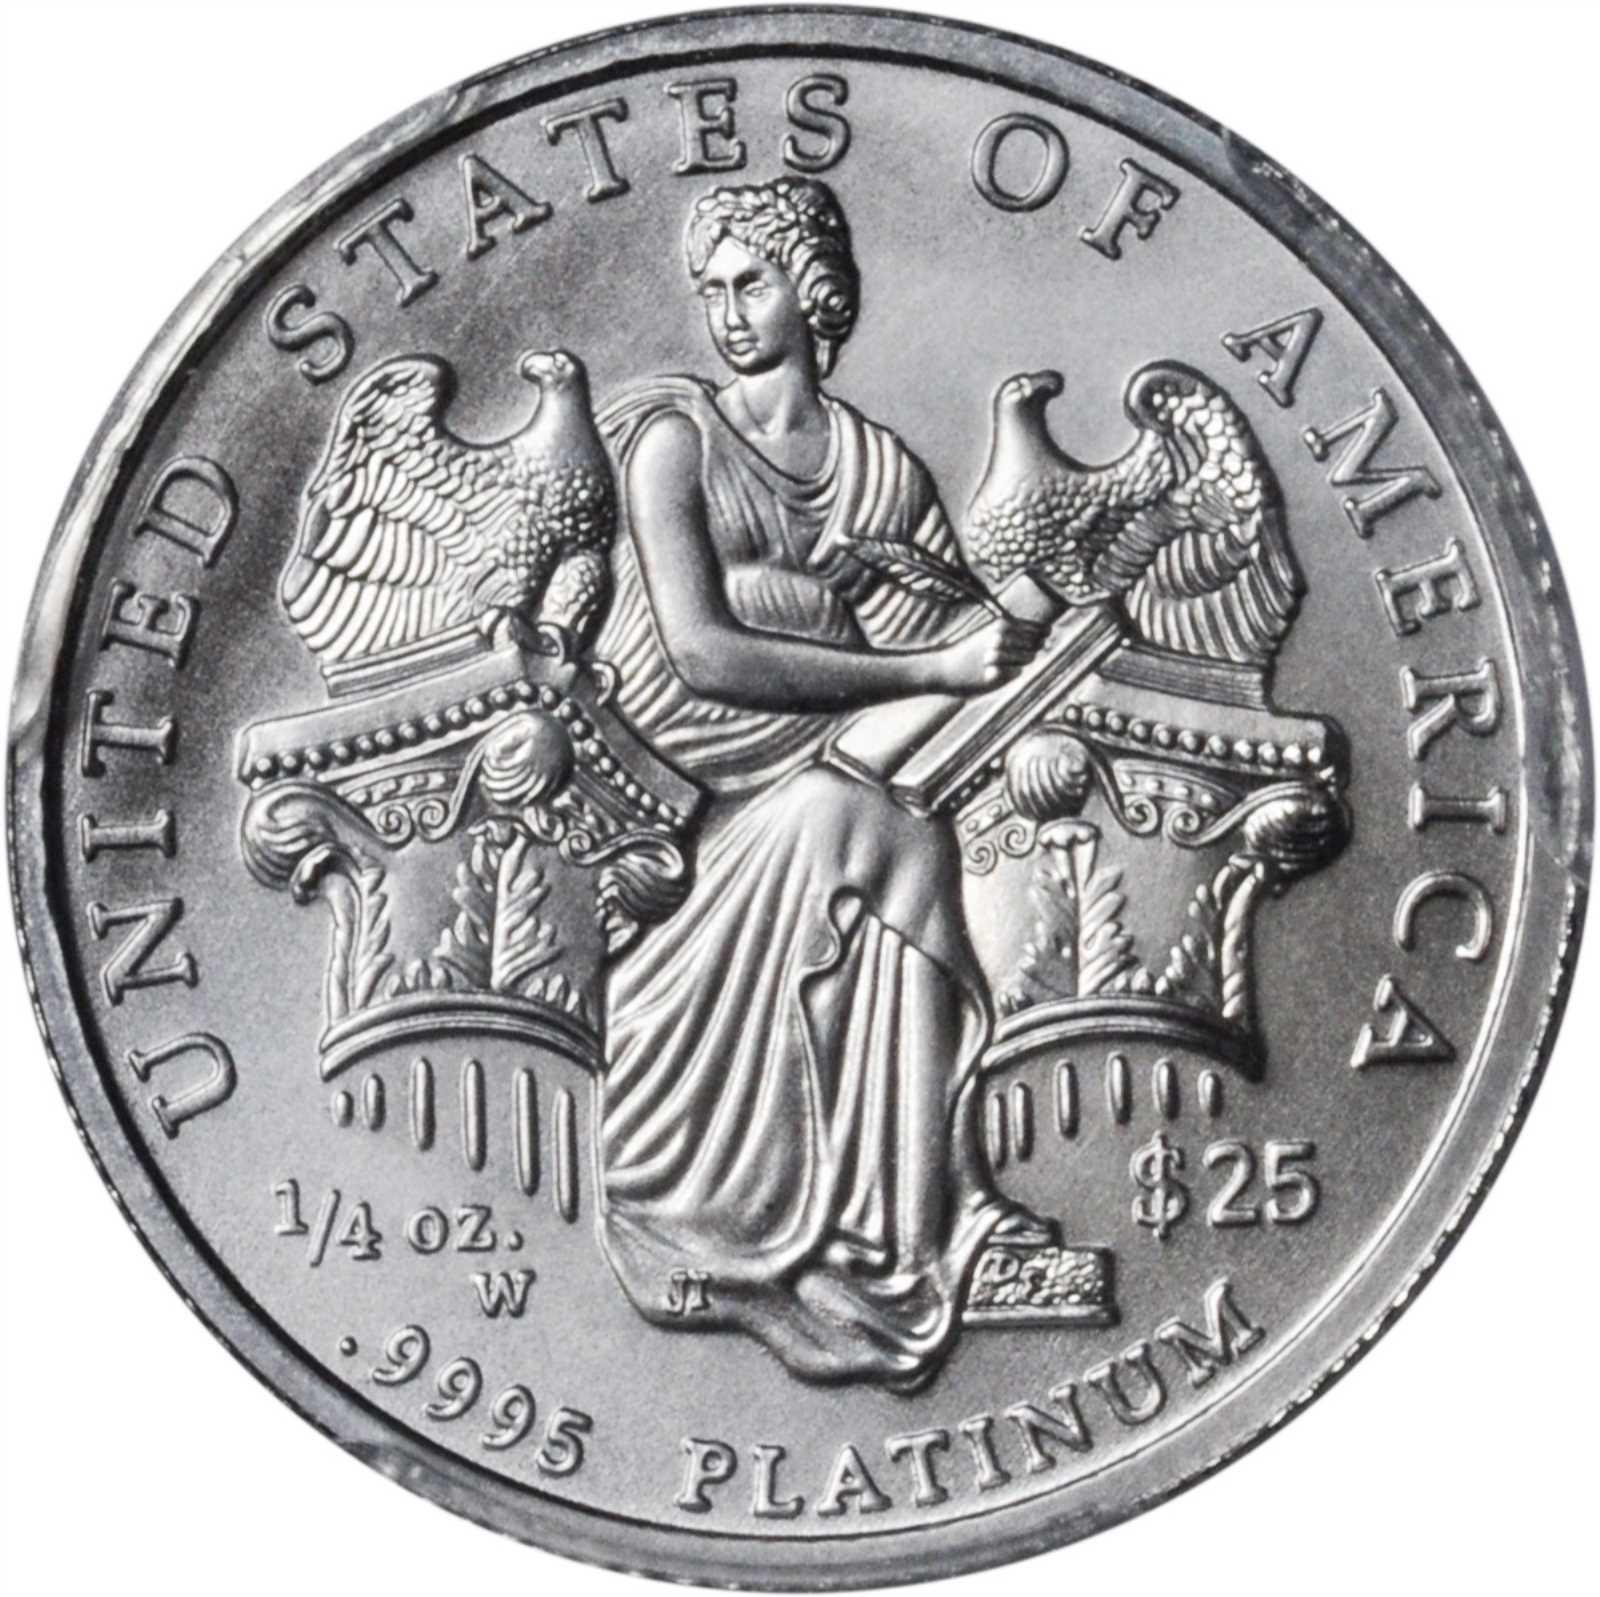 coin reverse u library mint hi image eagle bullion images res s news ounce american platinum one